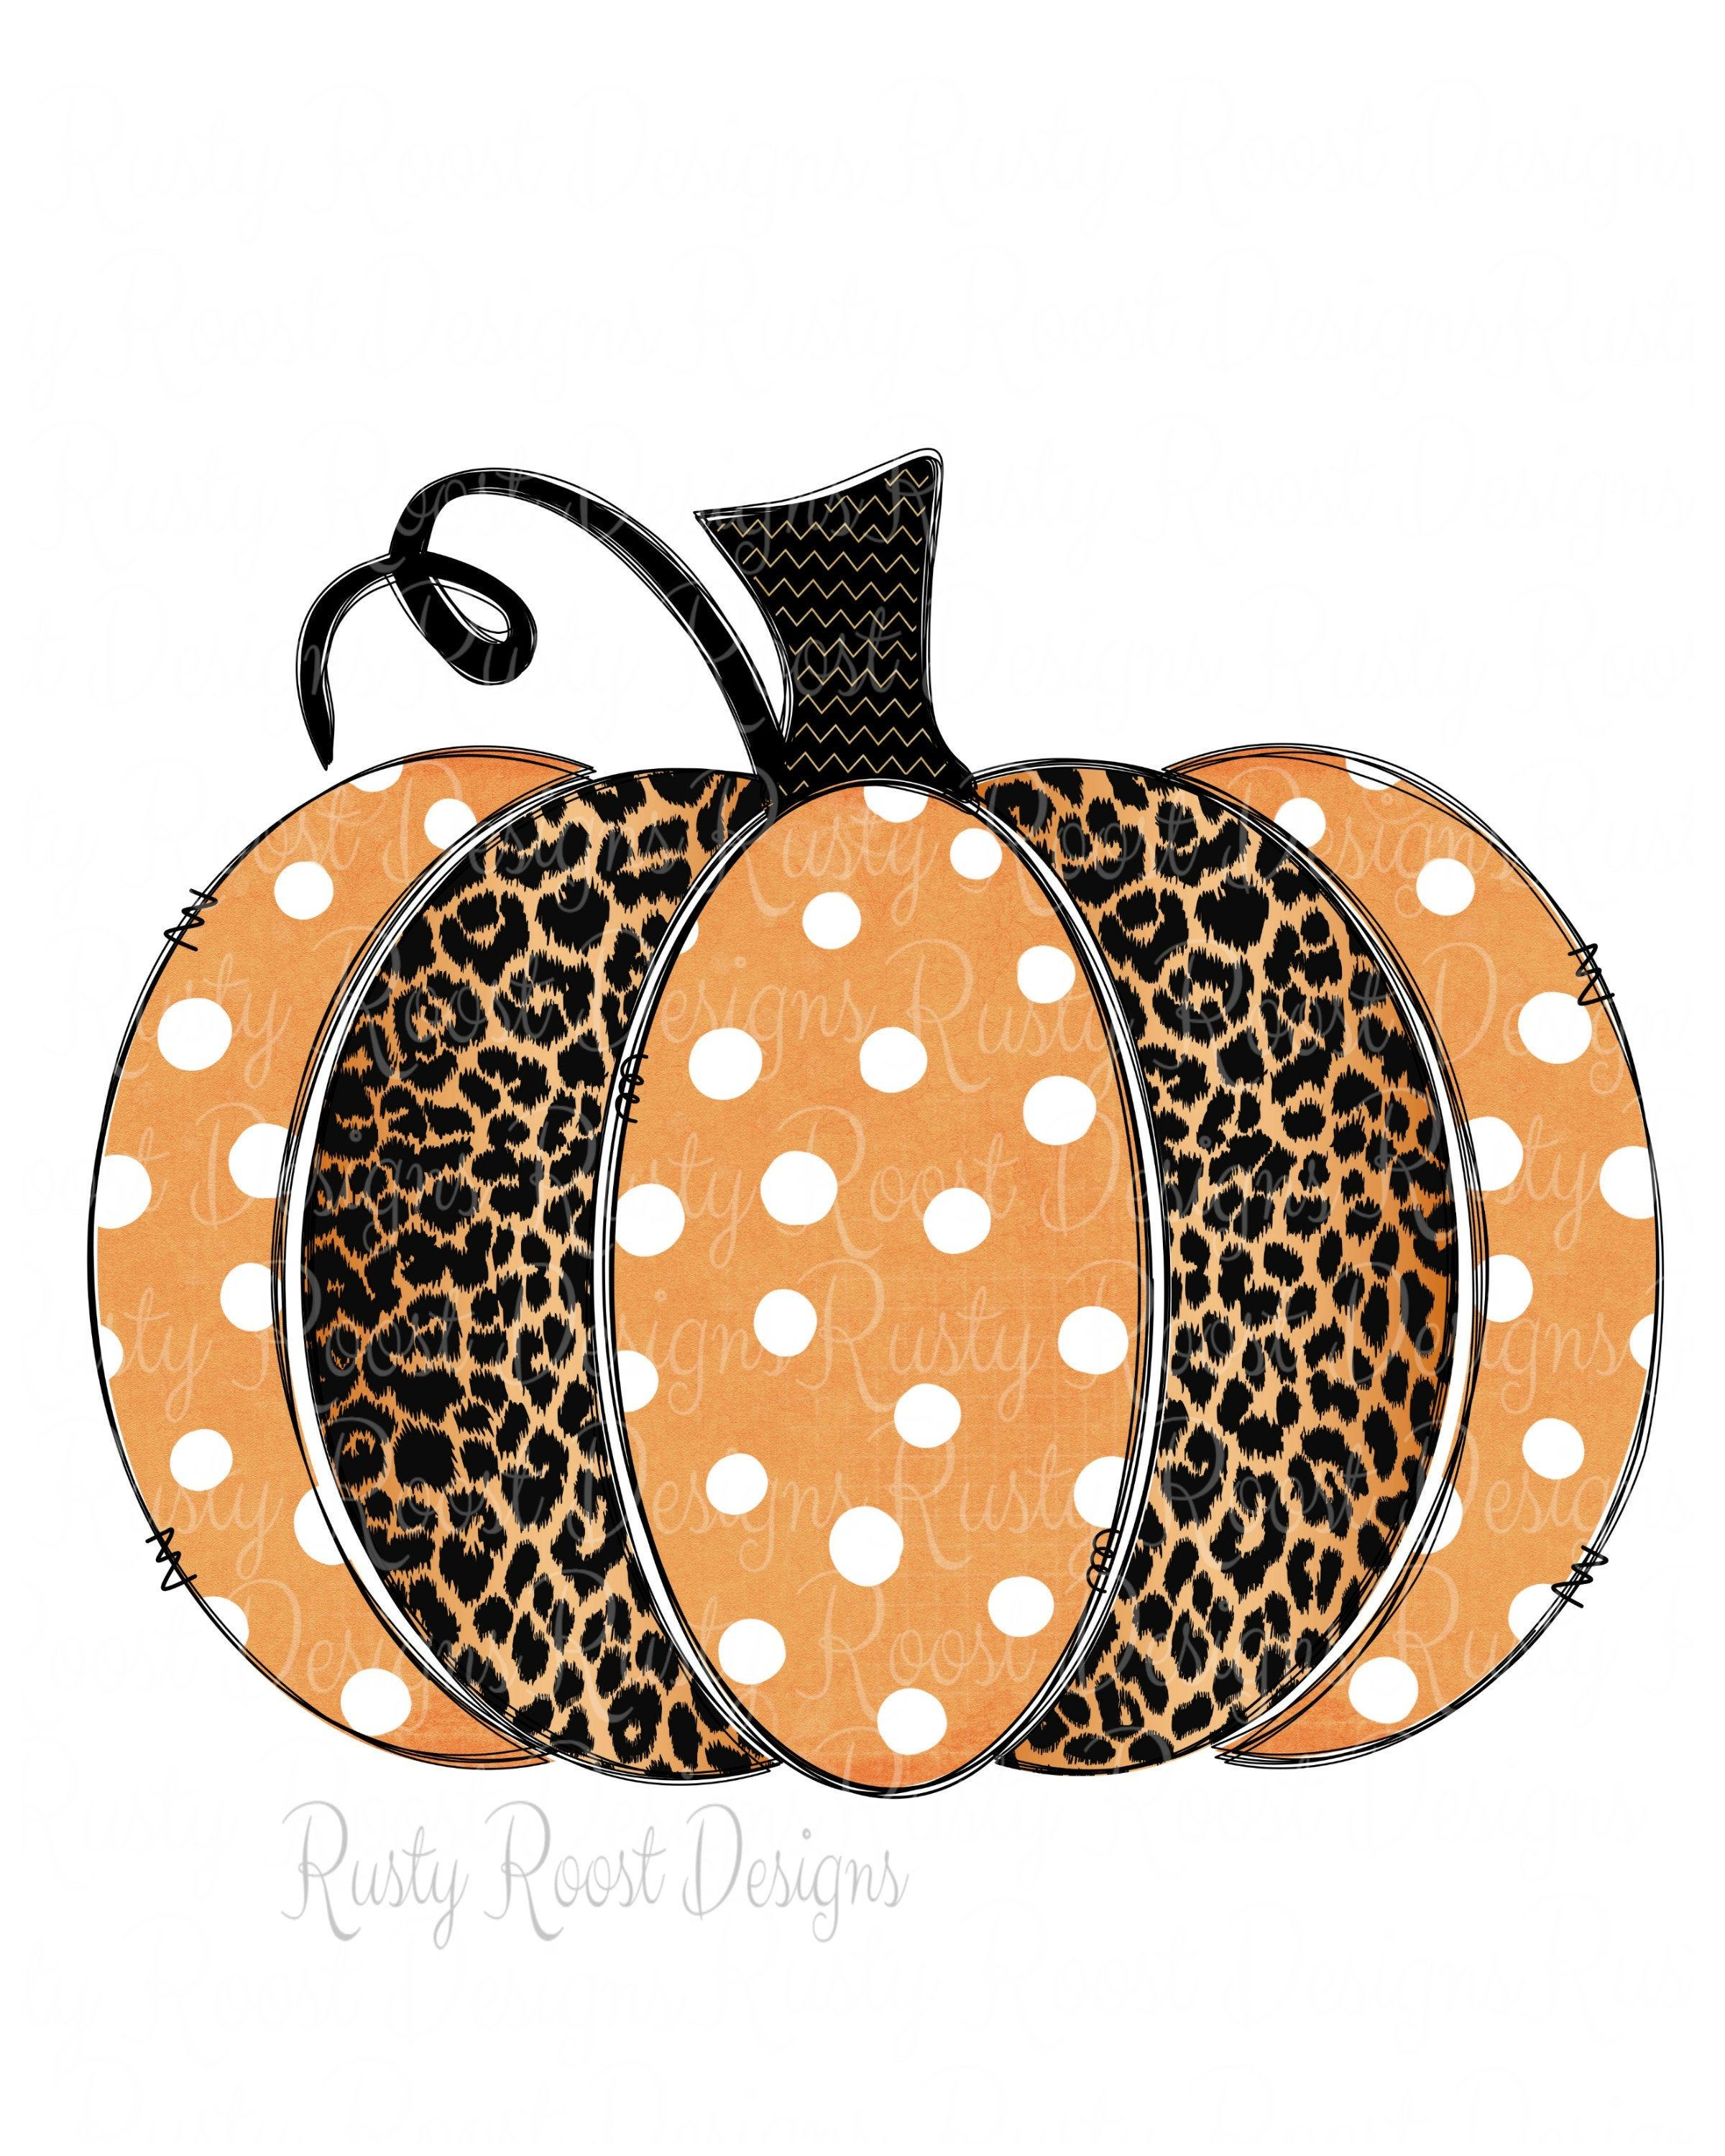 Leopard pumpkin png,fall sublimation designs downloads,Fall design,fall image design,fall clipart,hello fall,pumpkin spice,pumpkin clipart #hellofall